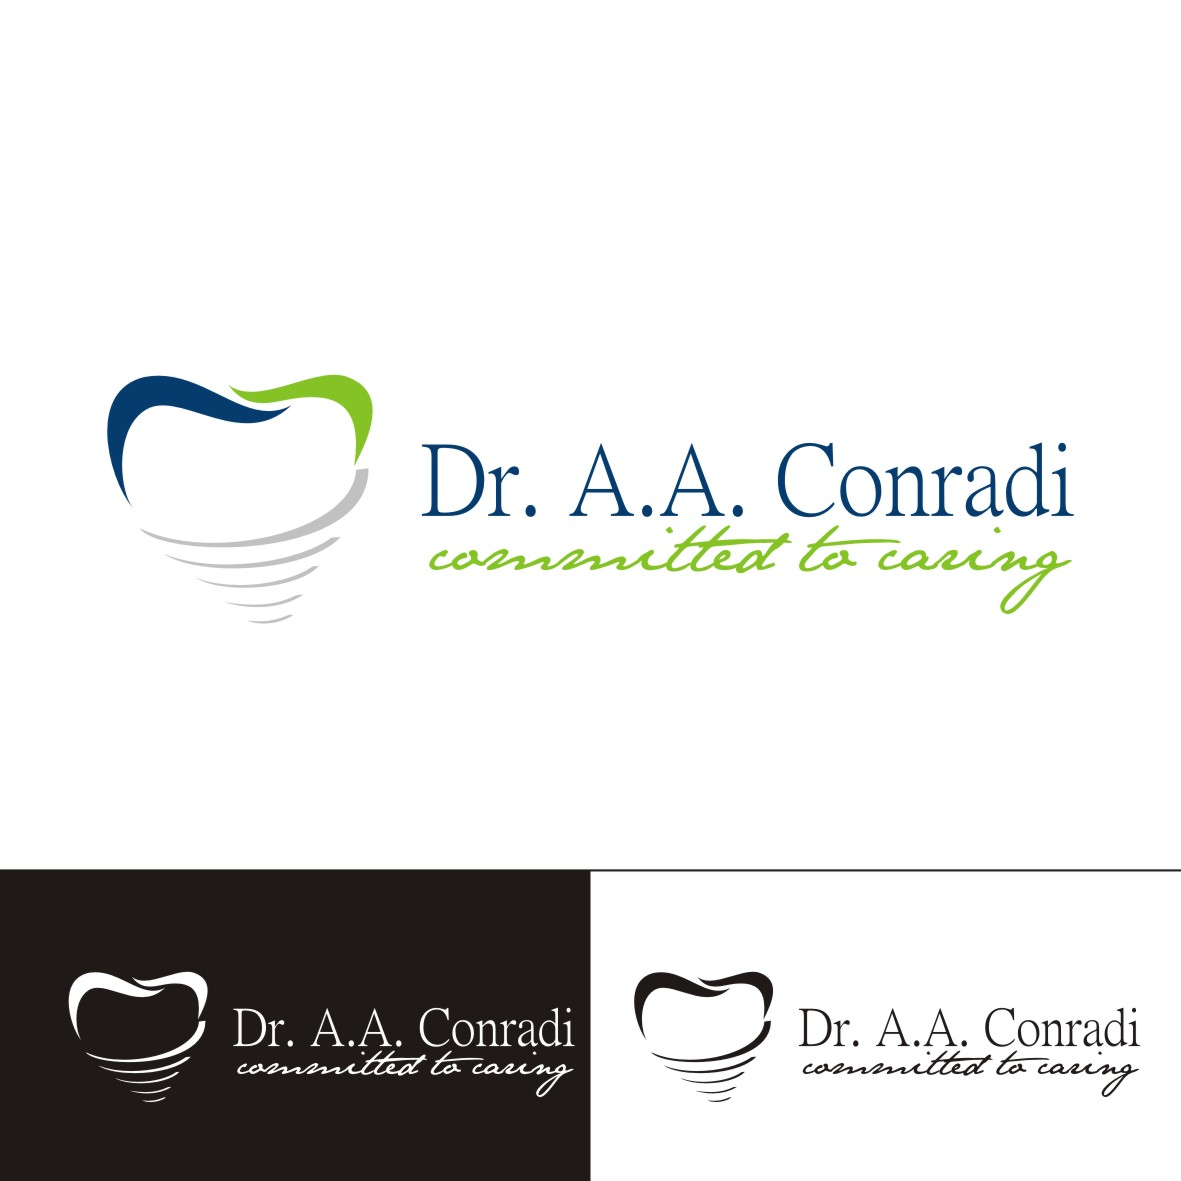 Logo Design by arteo_design - Entry No. 175 in the Logo Design Contest Unique Logo Design Wanted for Dr. A.A. Conradi.